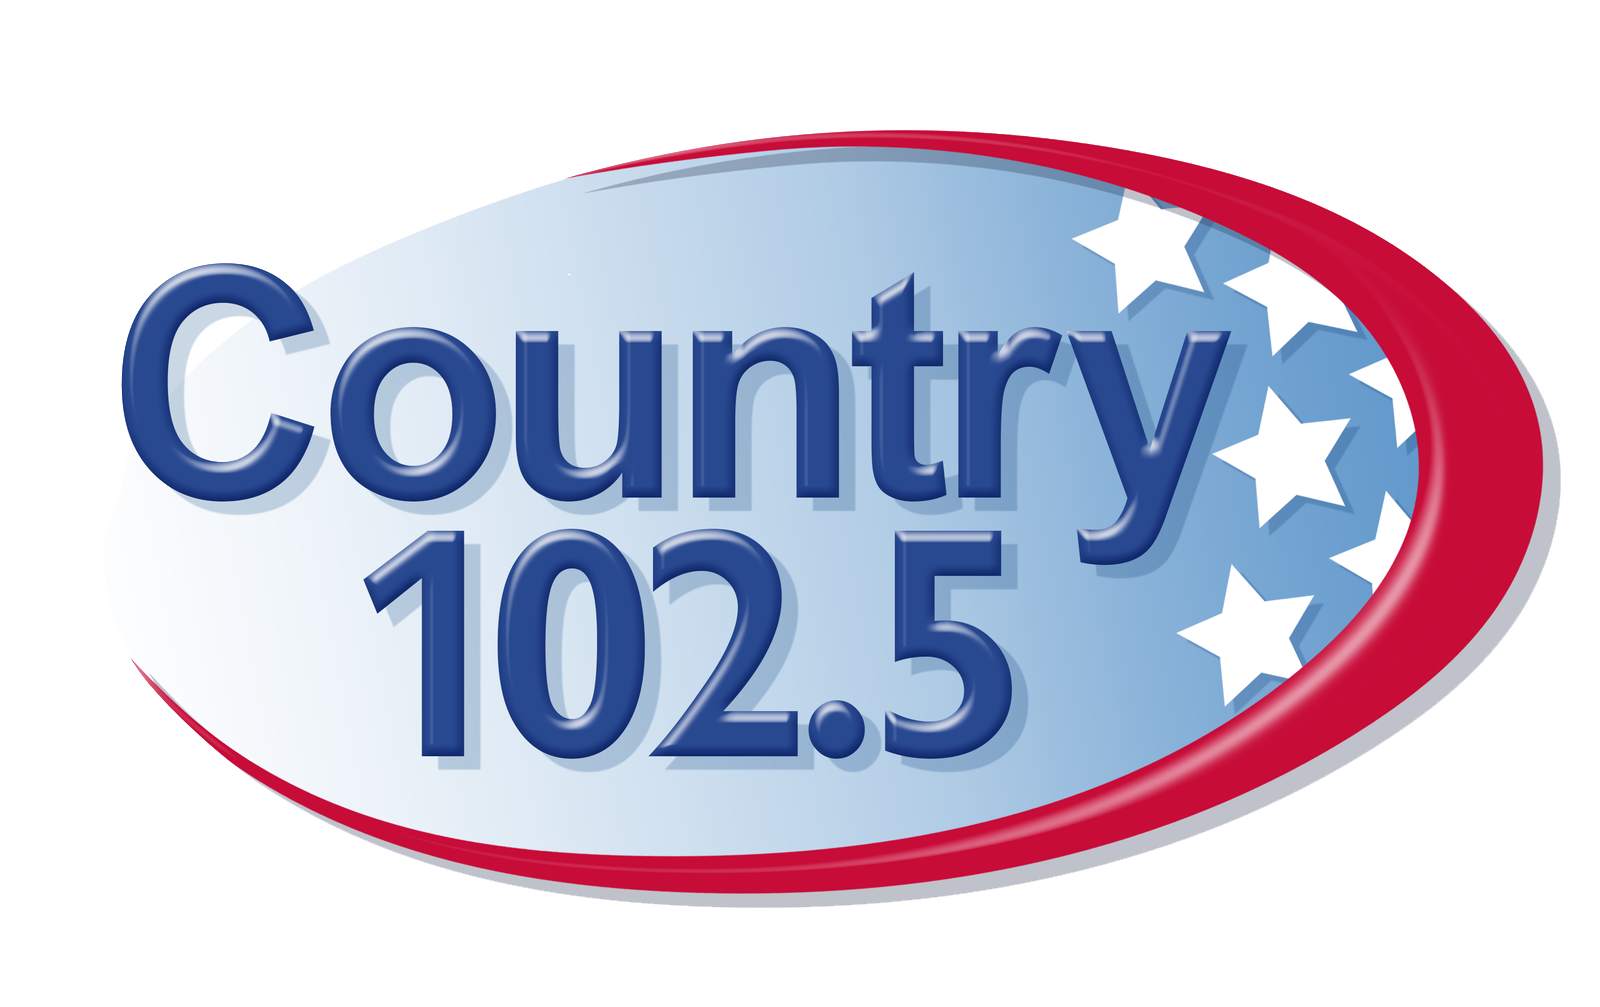 Country 1025 LOGO_STROKE_PNG copy.png